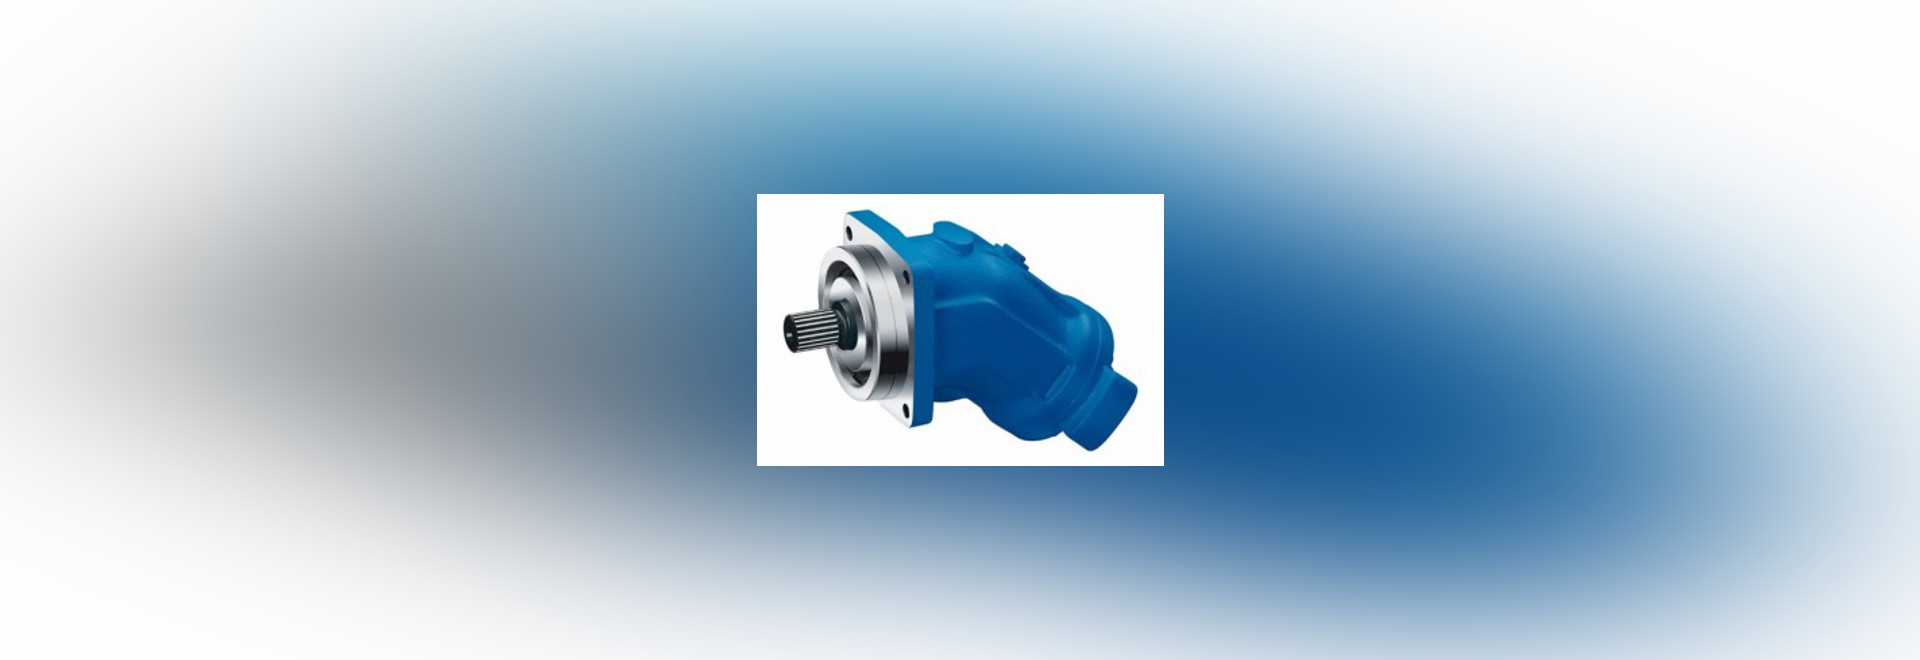 What is a hydraulic motor?